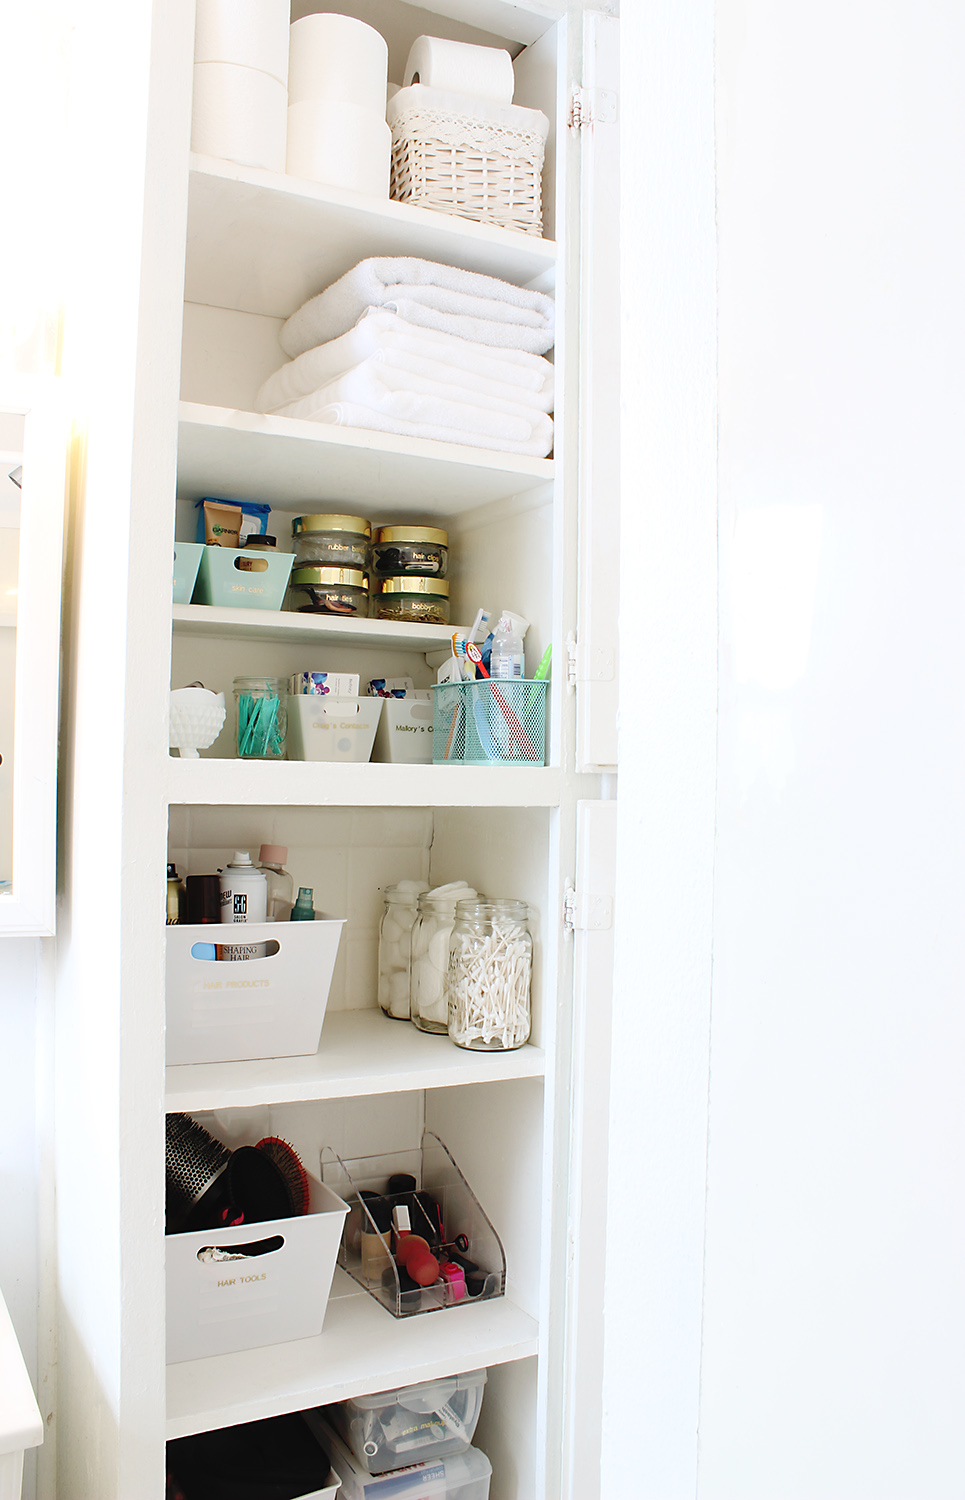 13 Quick And Easy Bathroom Organization Tips  Classy Clutter